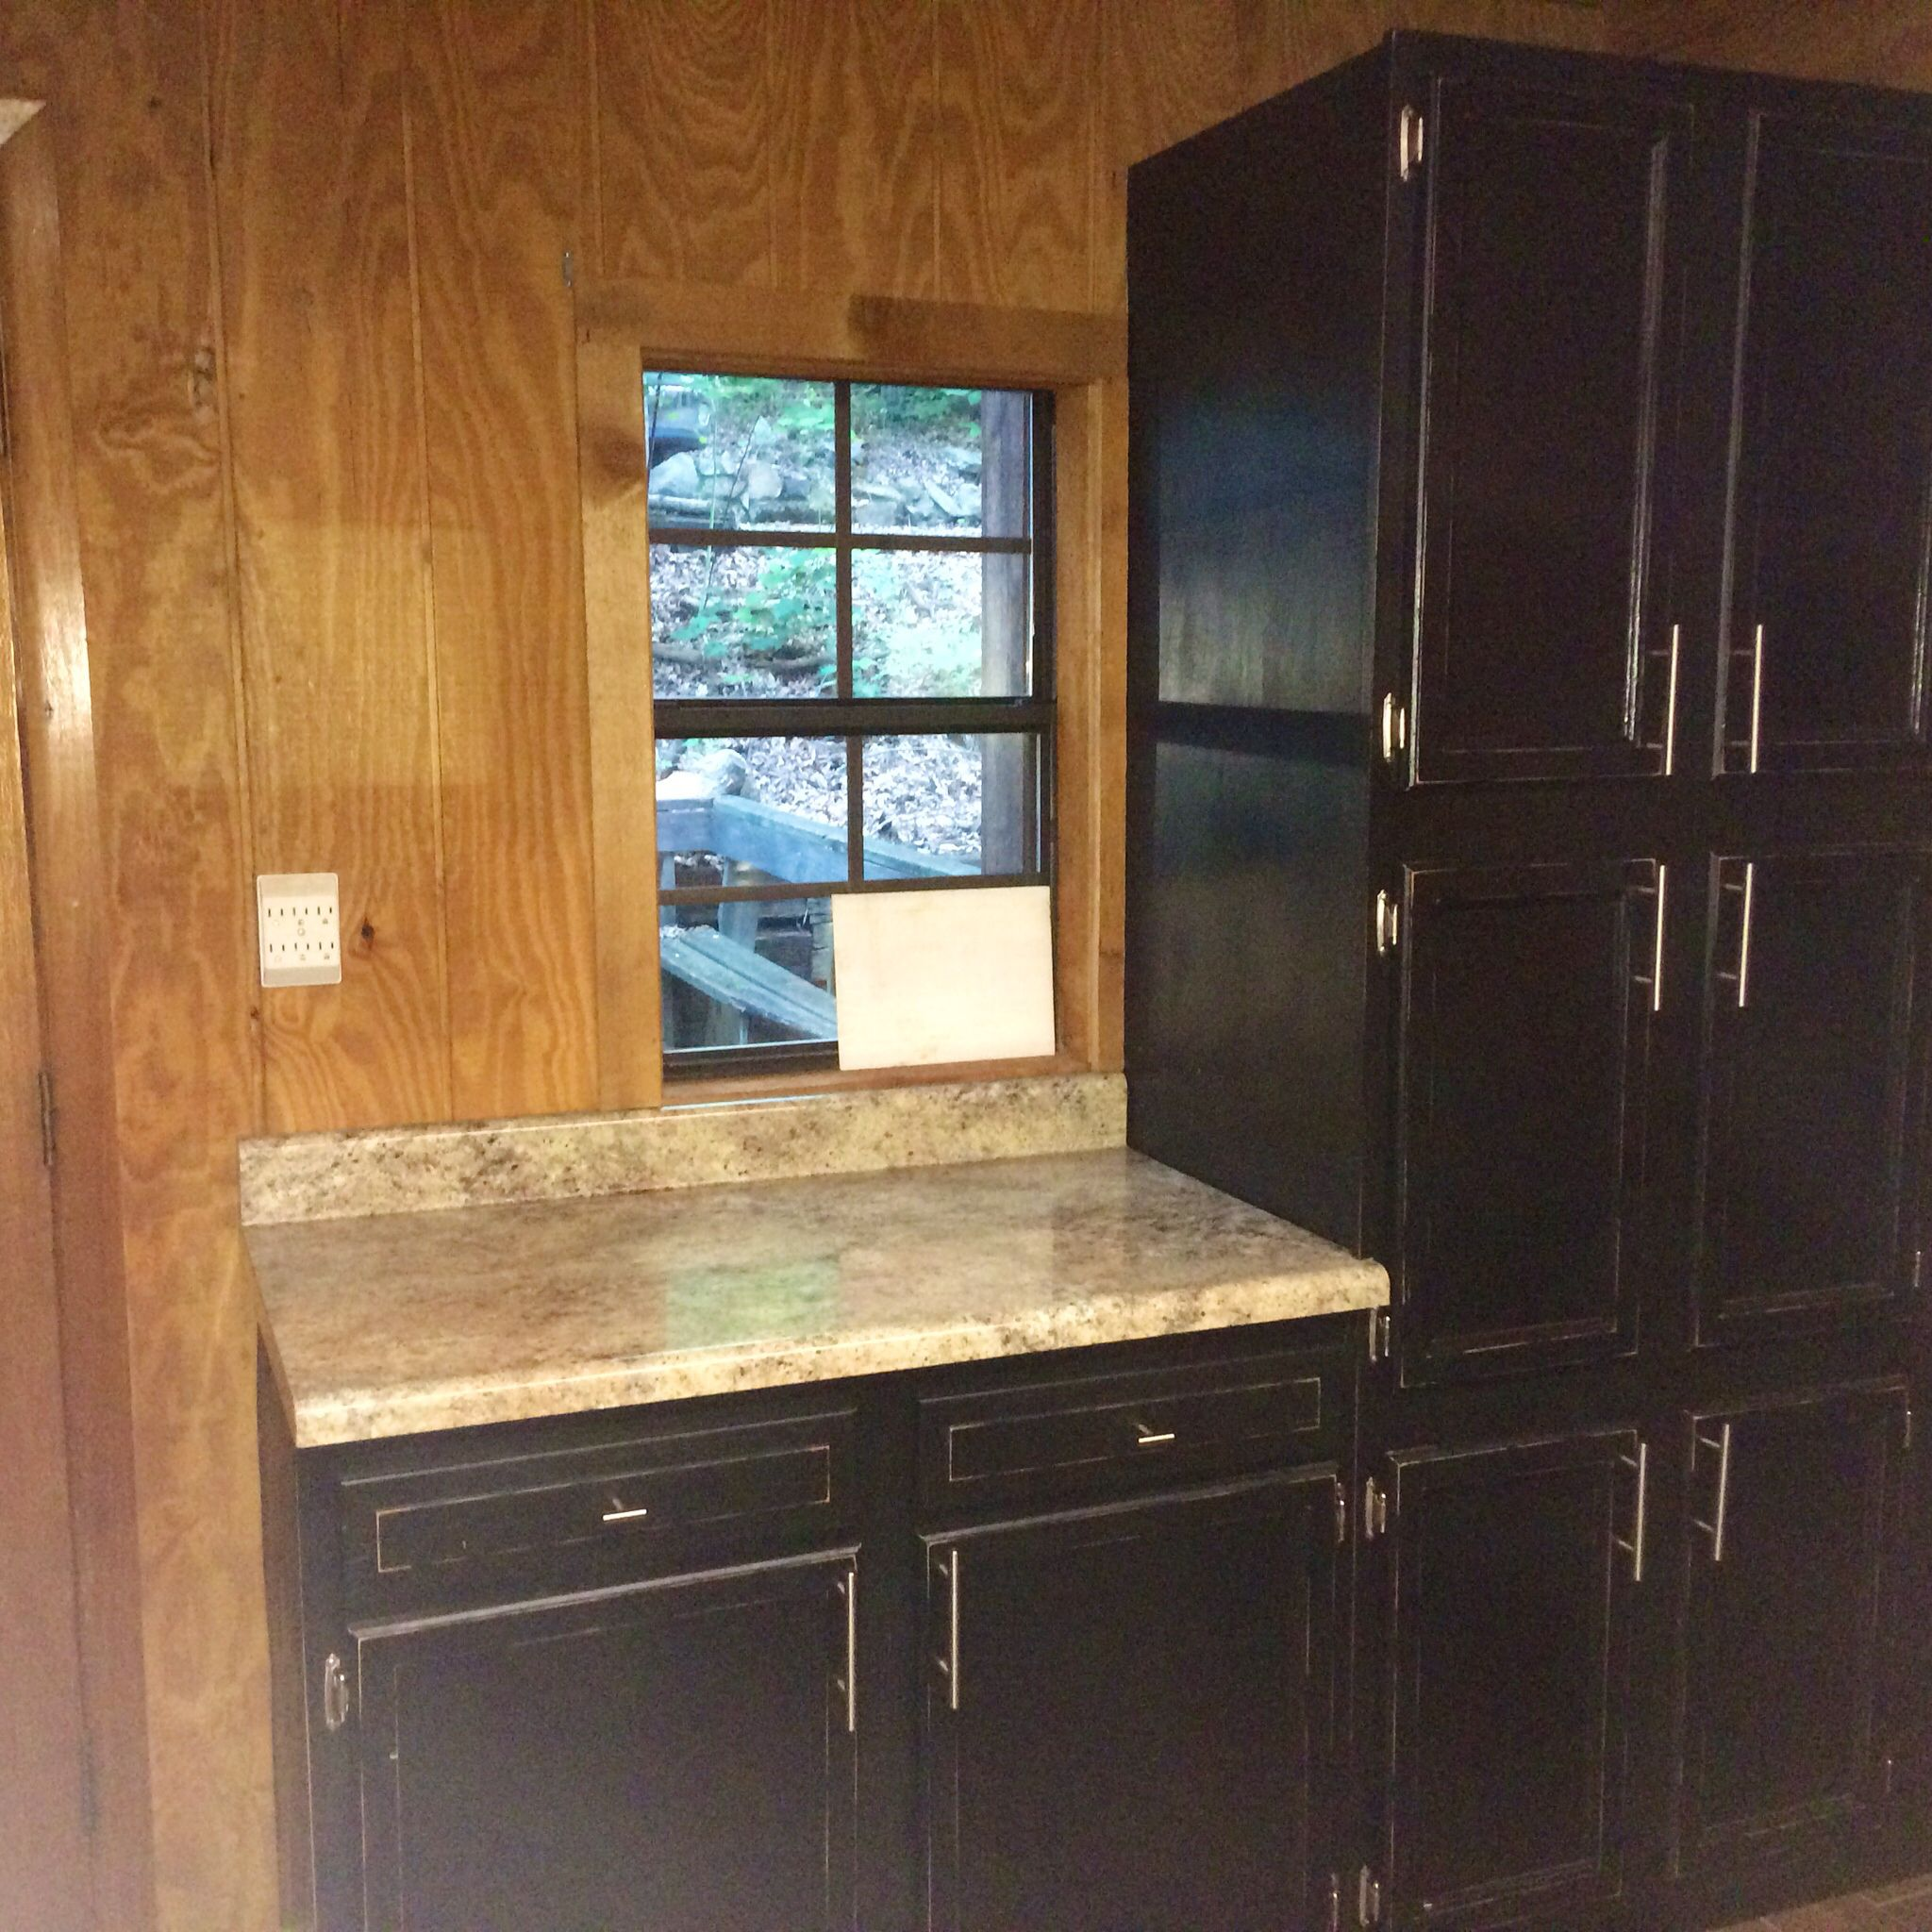 New Kitchen Cabinets Cost: Our Unfinished Maple Cabinets Are Low Cost And Give Our